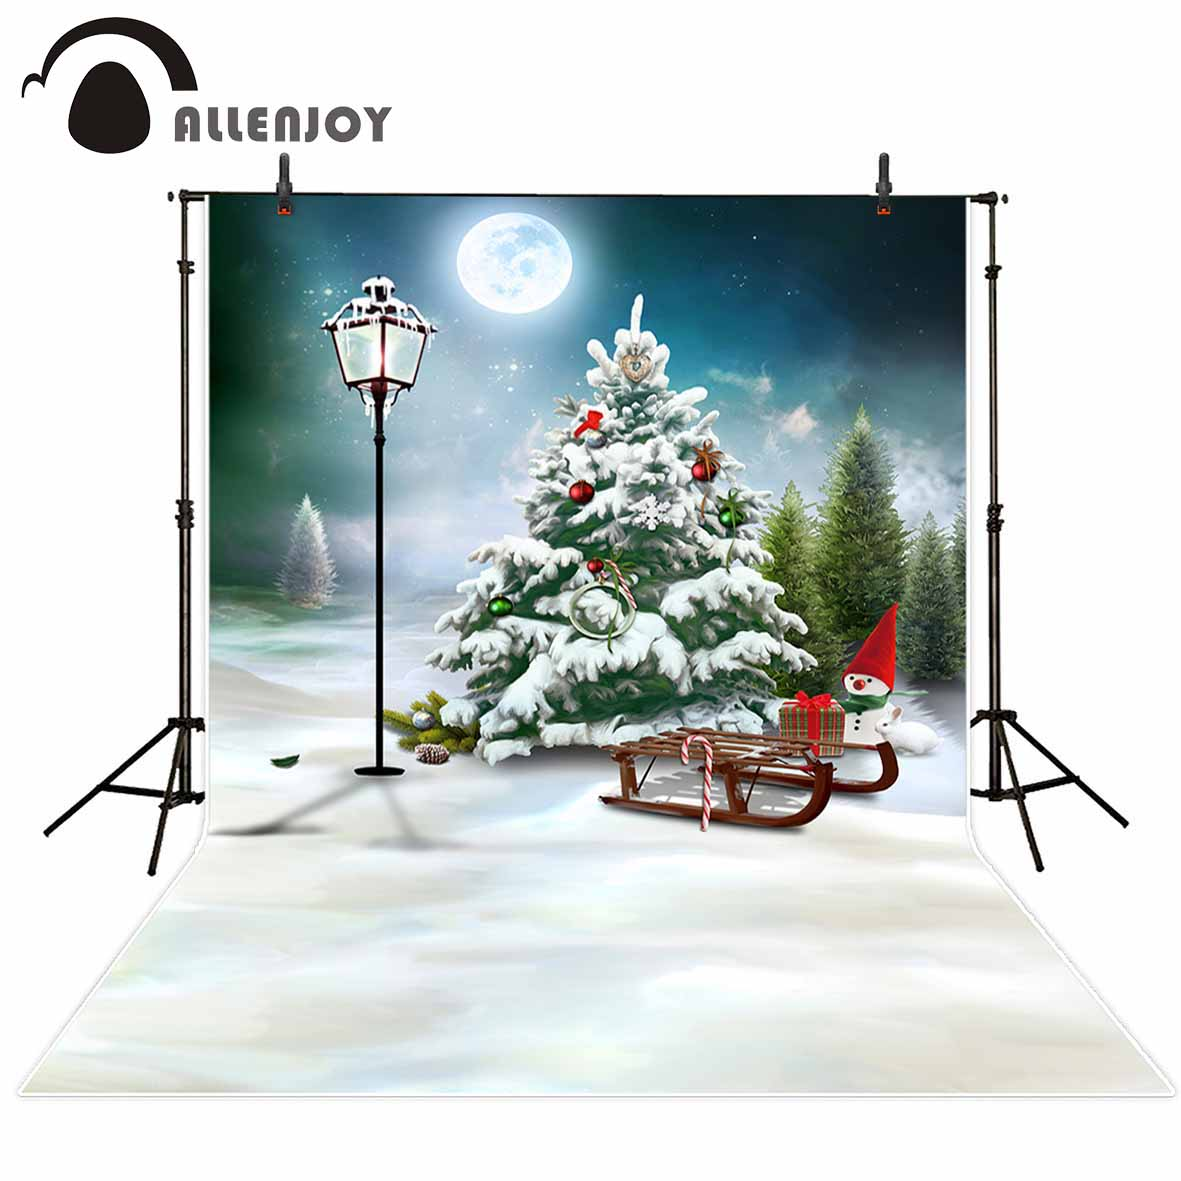 Allenjoy photography background Snow winter Christmas tree cartoon sled full moon background photo studio camera fotografica